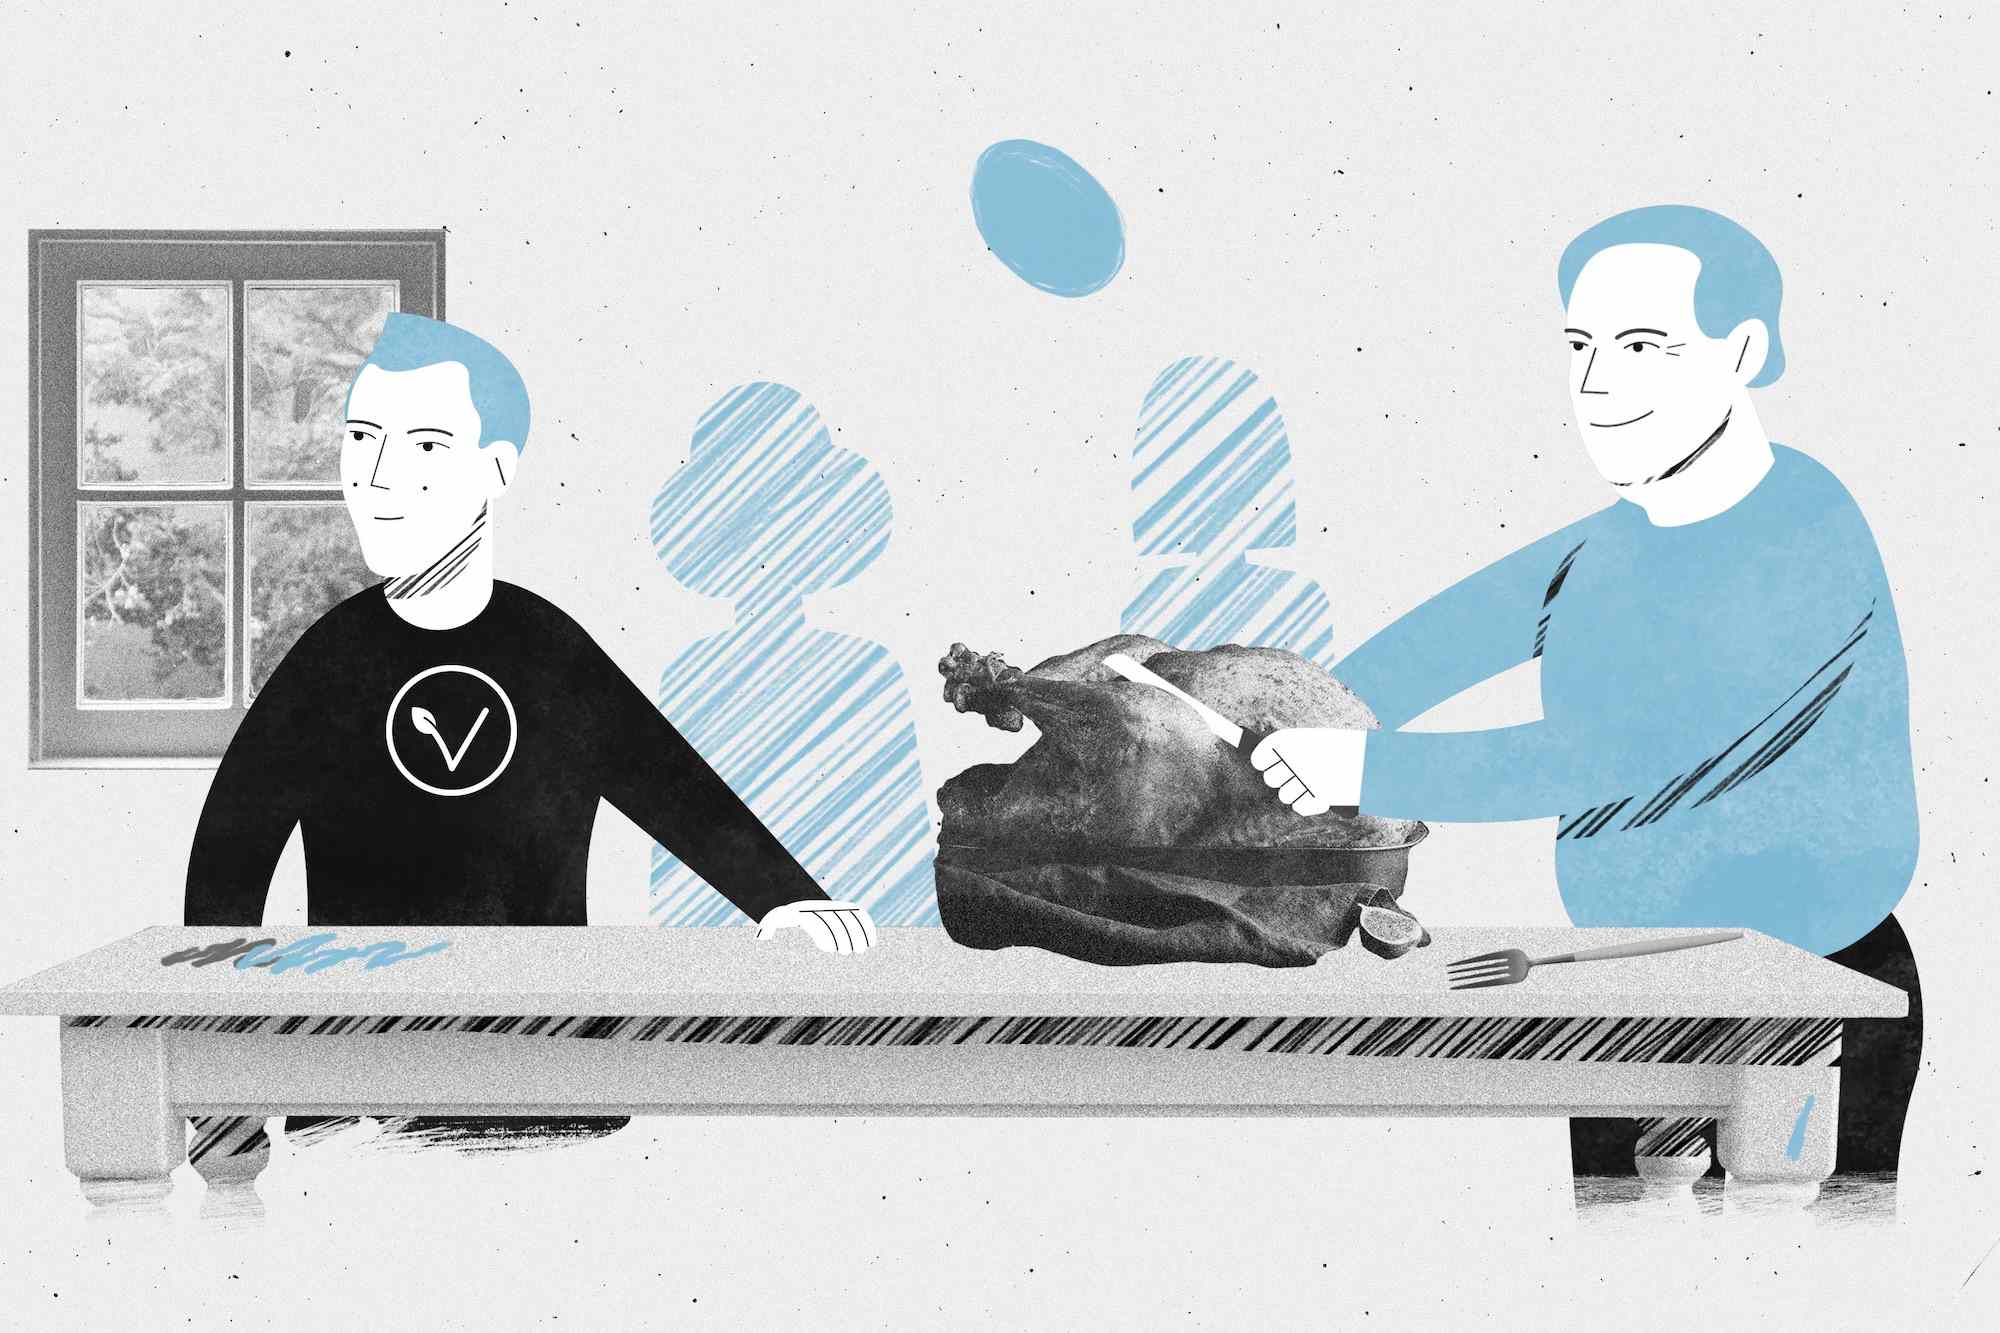 animation from Meat Me Halfway